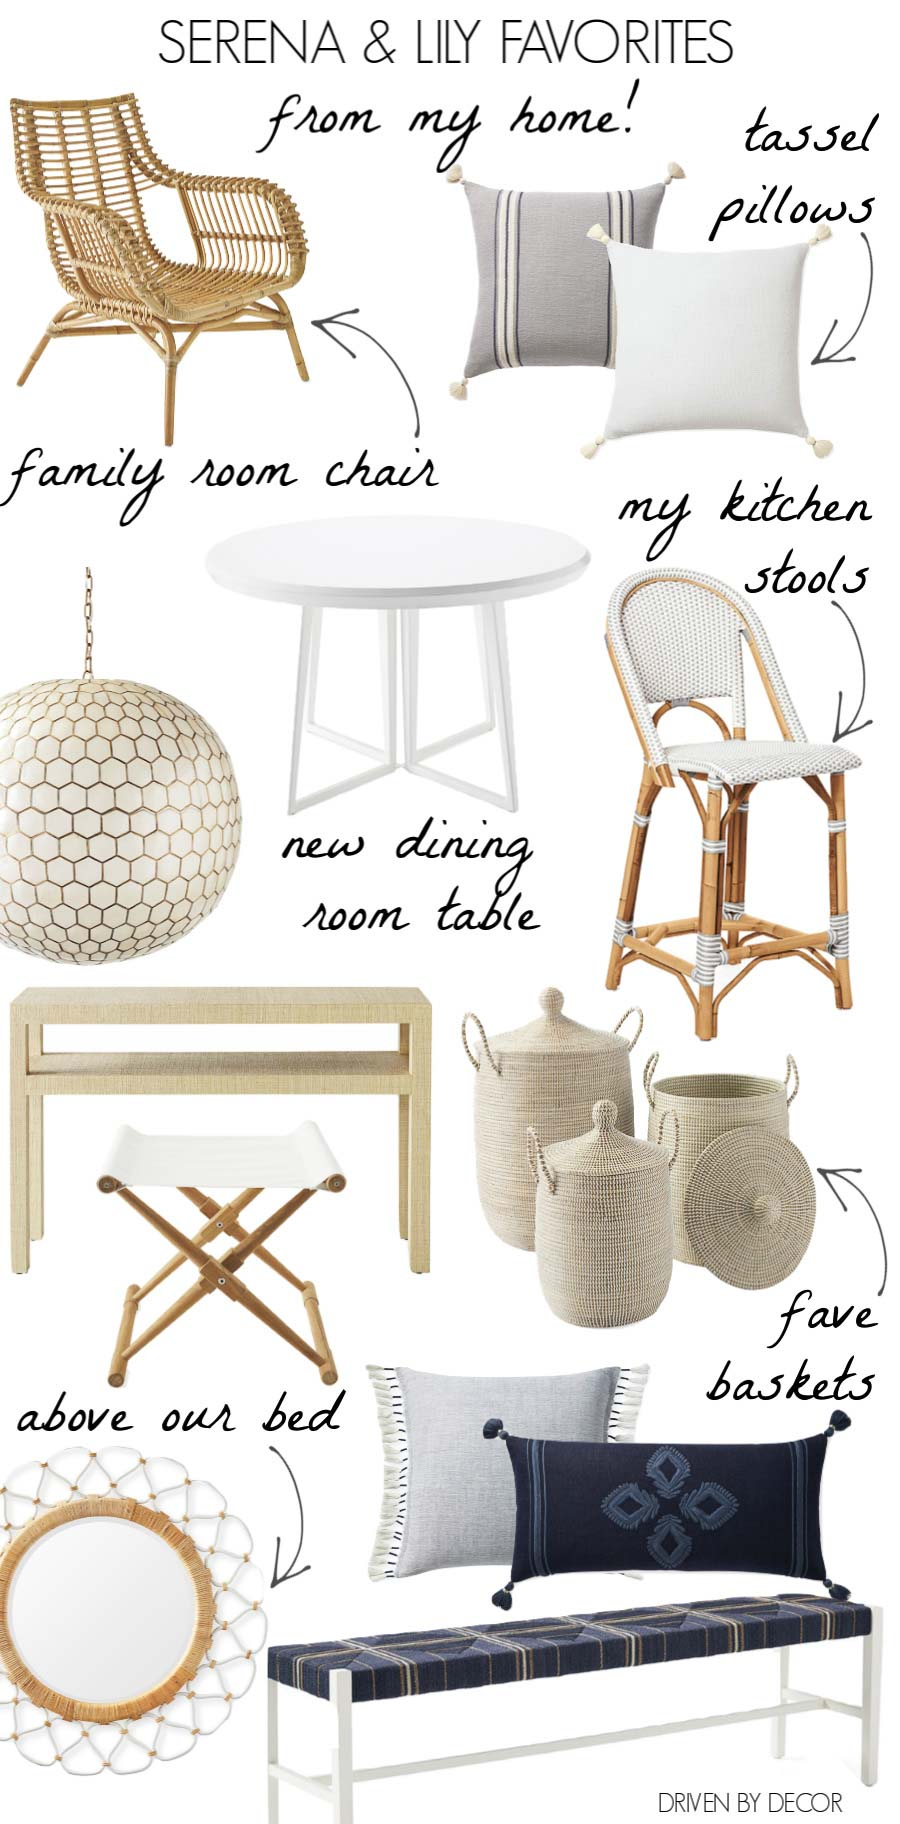 Favorites from my home that are part of Serena & Lily's Black Friday Sale!